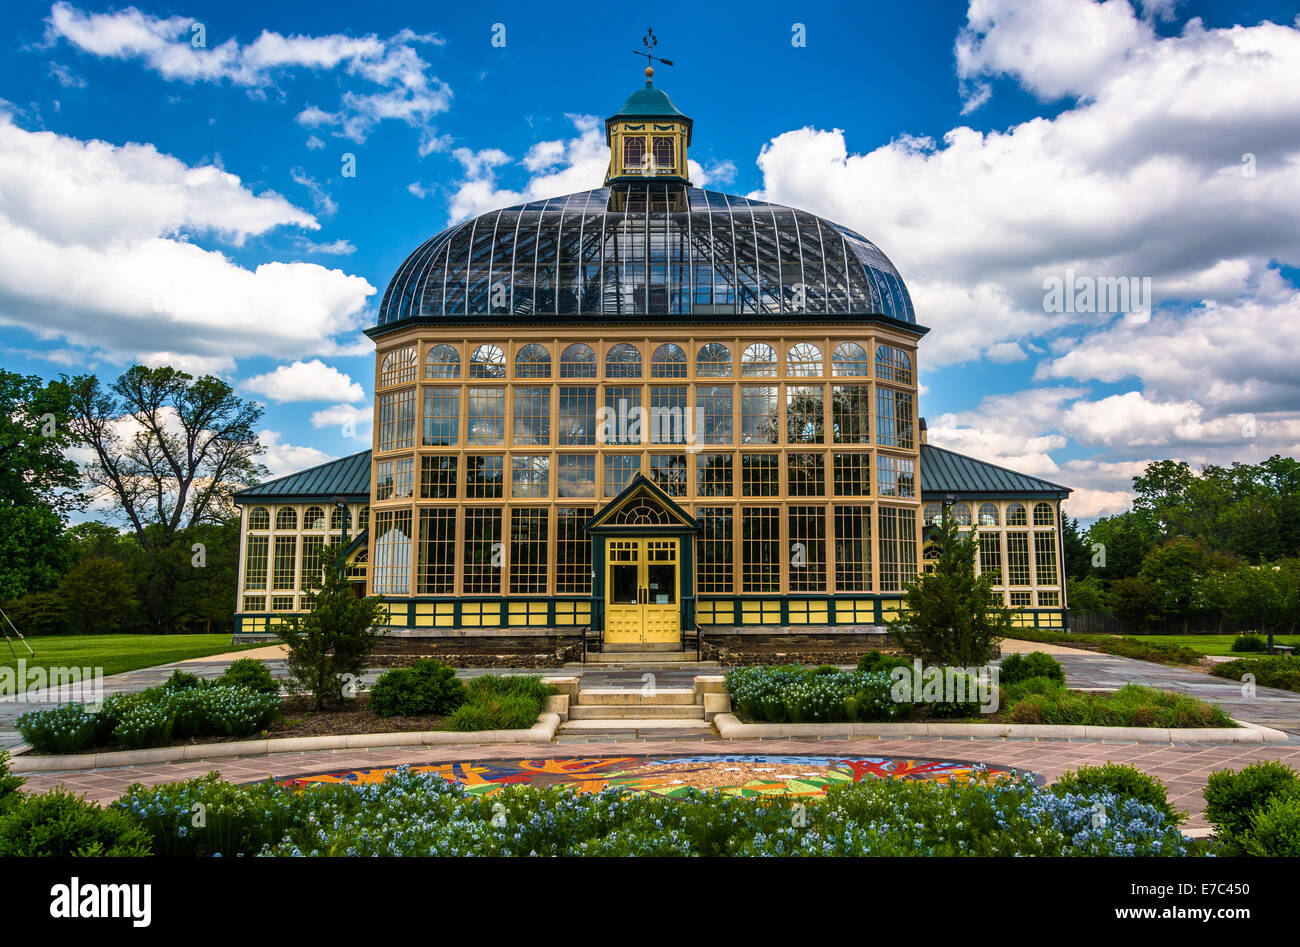 Attirant Gardens And The Howard Peters Rawlings Conservatory In Druid Hill Park,  Baltimore, Maryland